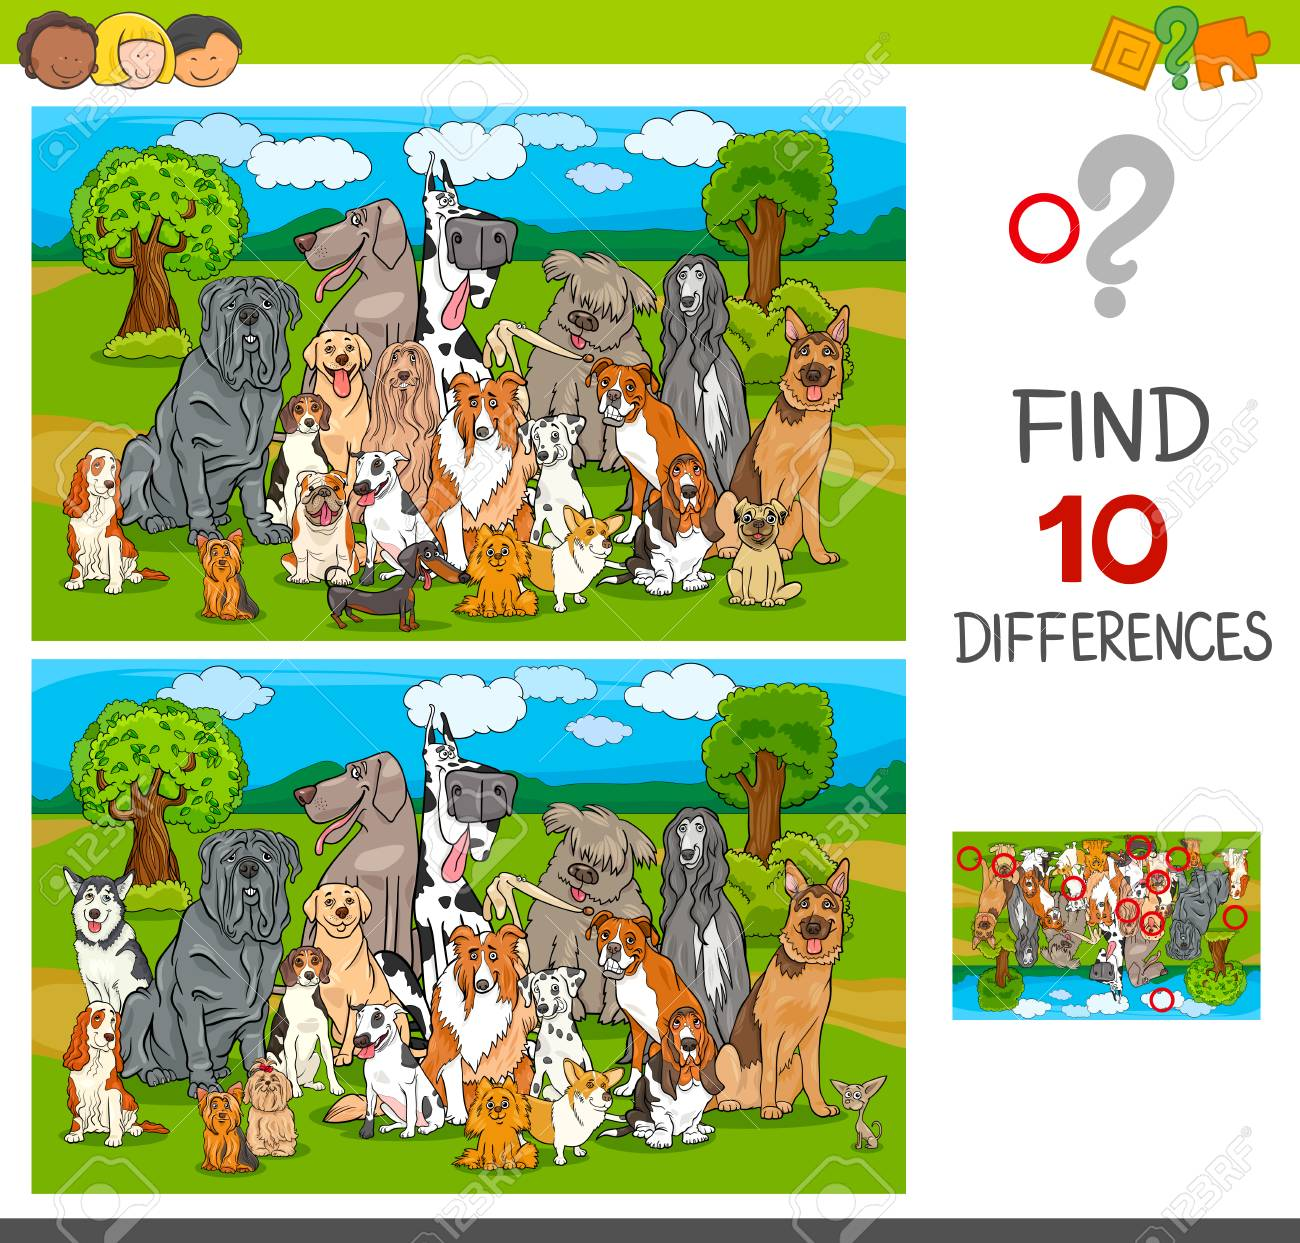 Cartoon Illustration of Finding Ten Differences Between Pictures Educational Game for Children with Purebred Dogs Animal Characters - 118035937